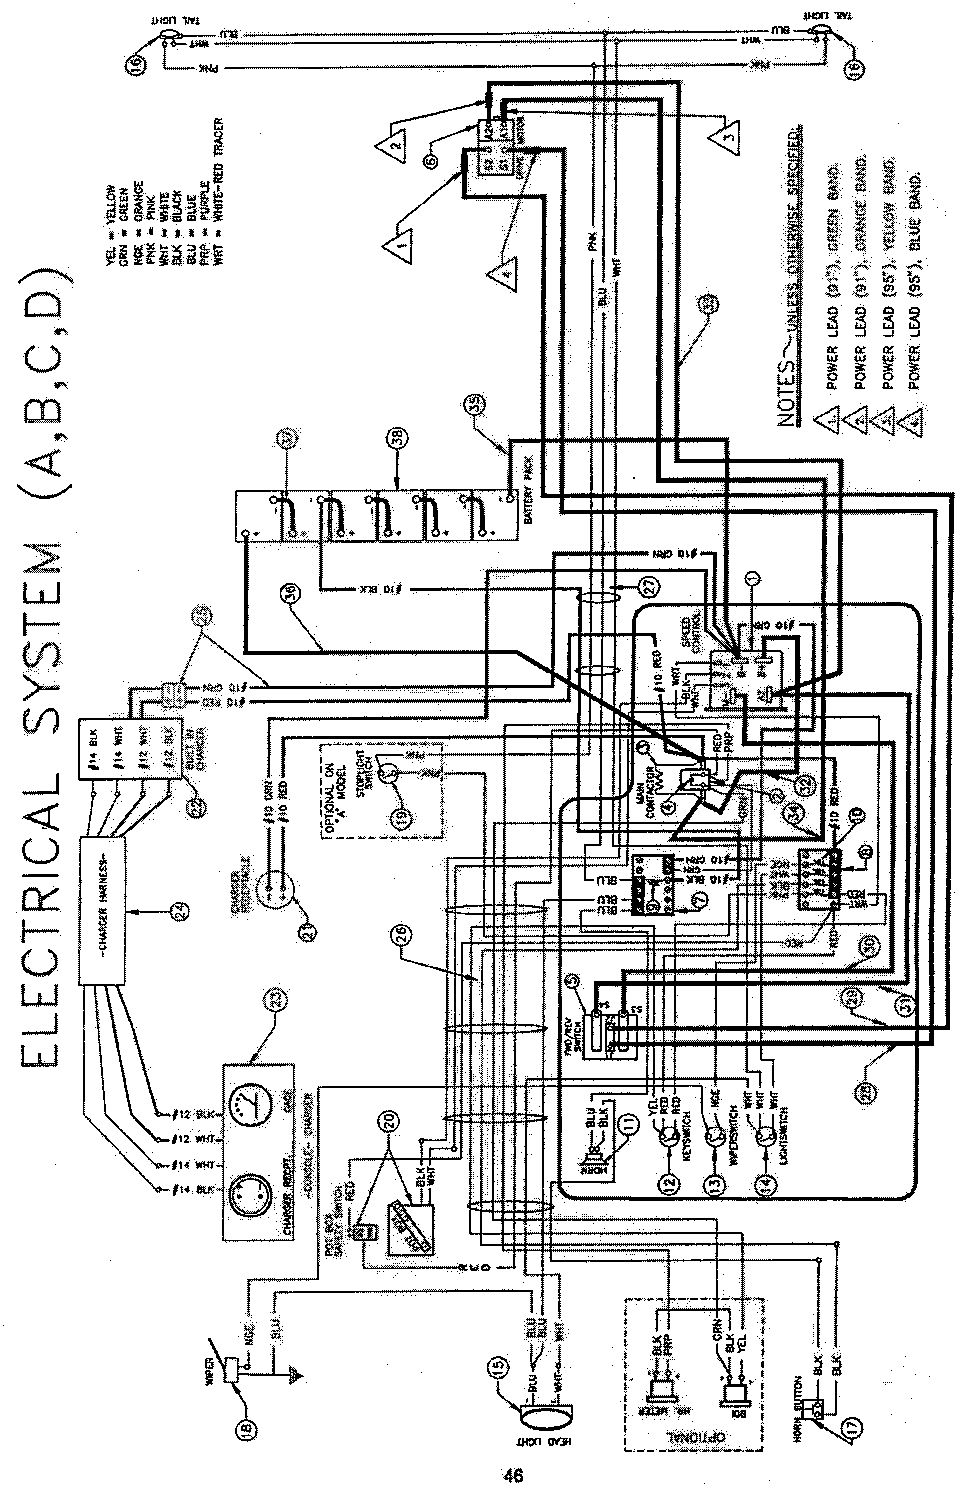 2001 ez go wiring diagram 36 volt 2001 discover your wiring 1992 club car wiring diagram